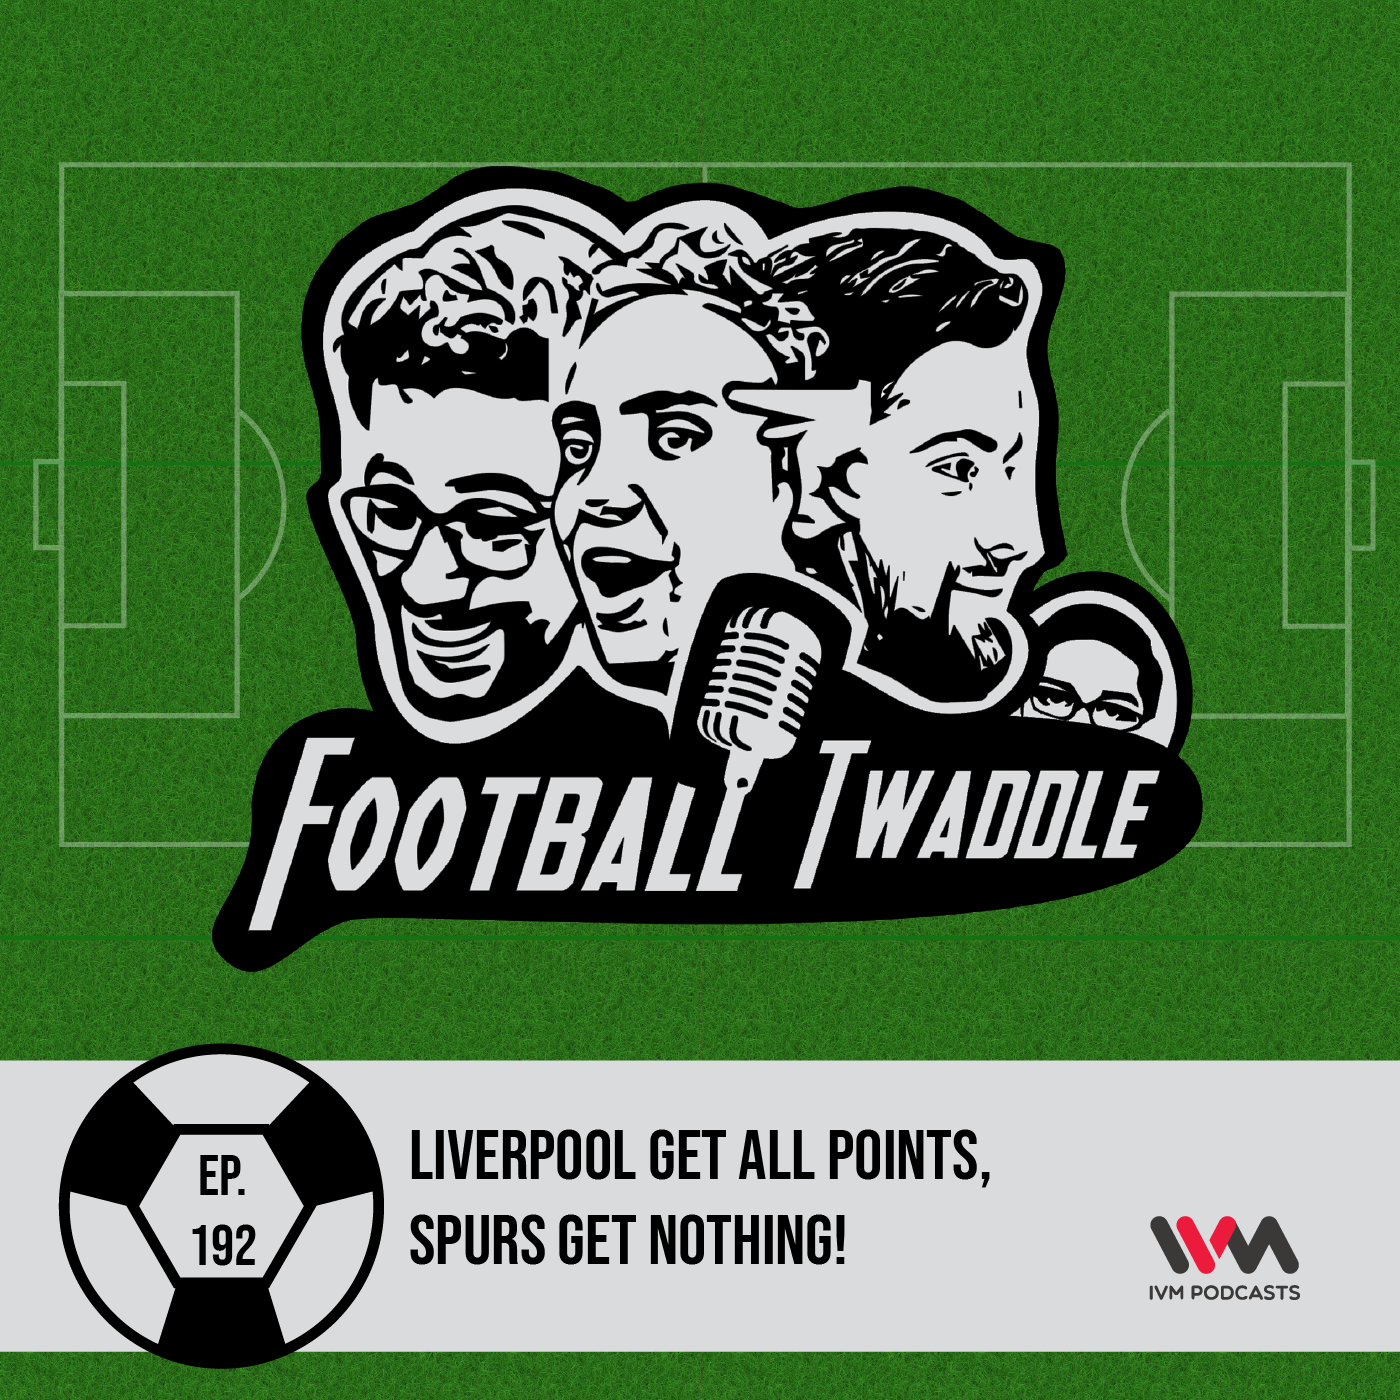 Liverpool Get All Points, Spurs Get Nothing!